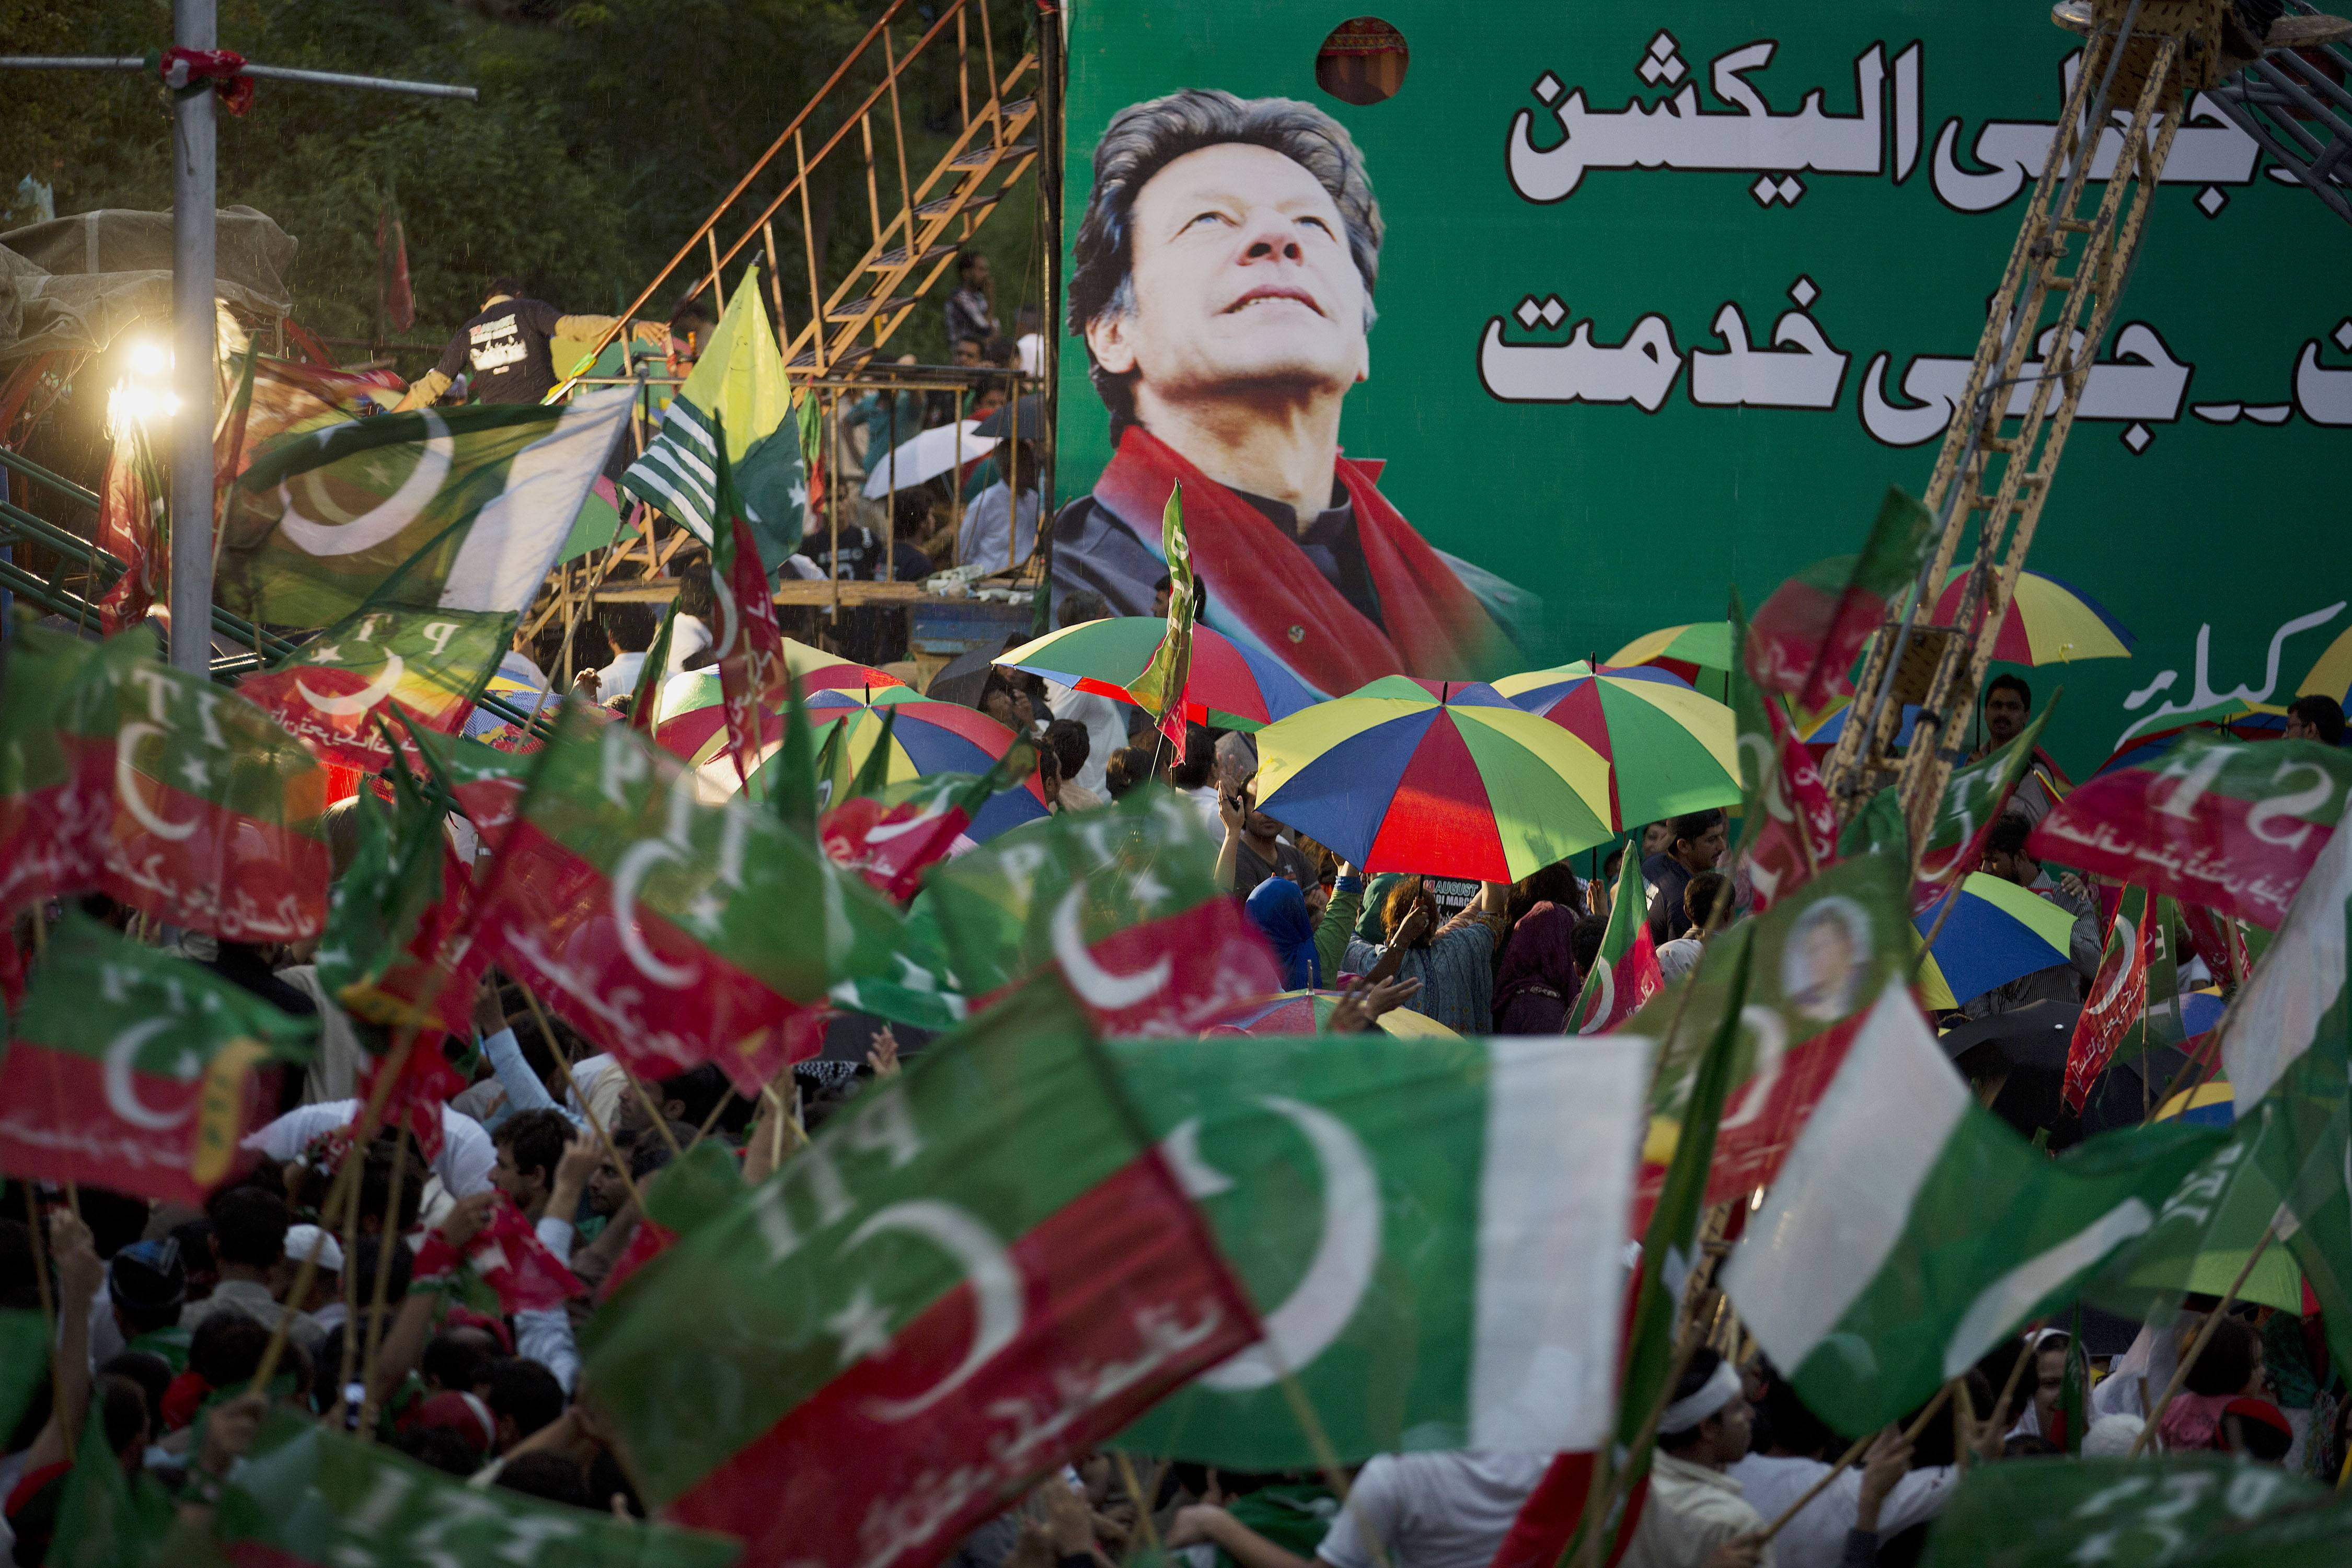 Supporters of Pakistan's cricketer-turned-politician Imran Khan wave their party flags Saturday at a rally in Islamabad, Pakistan.